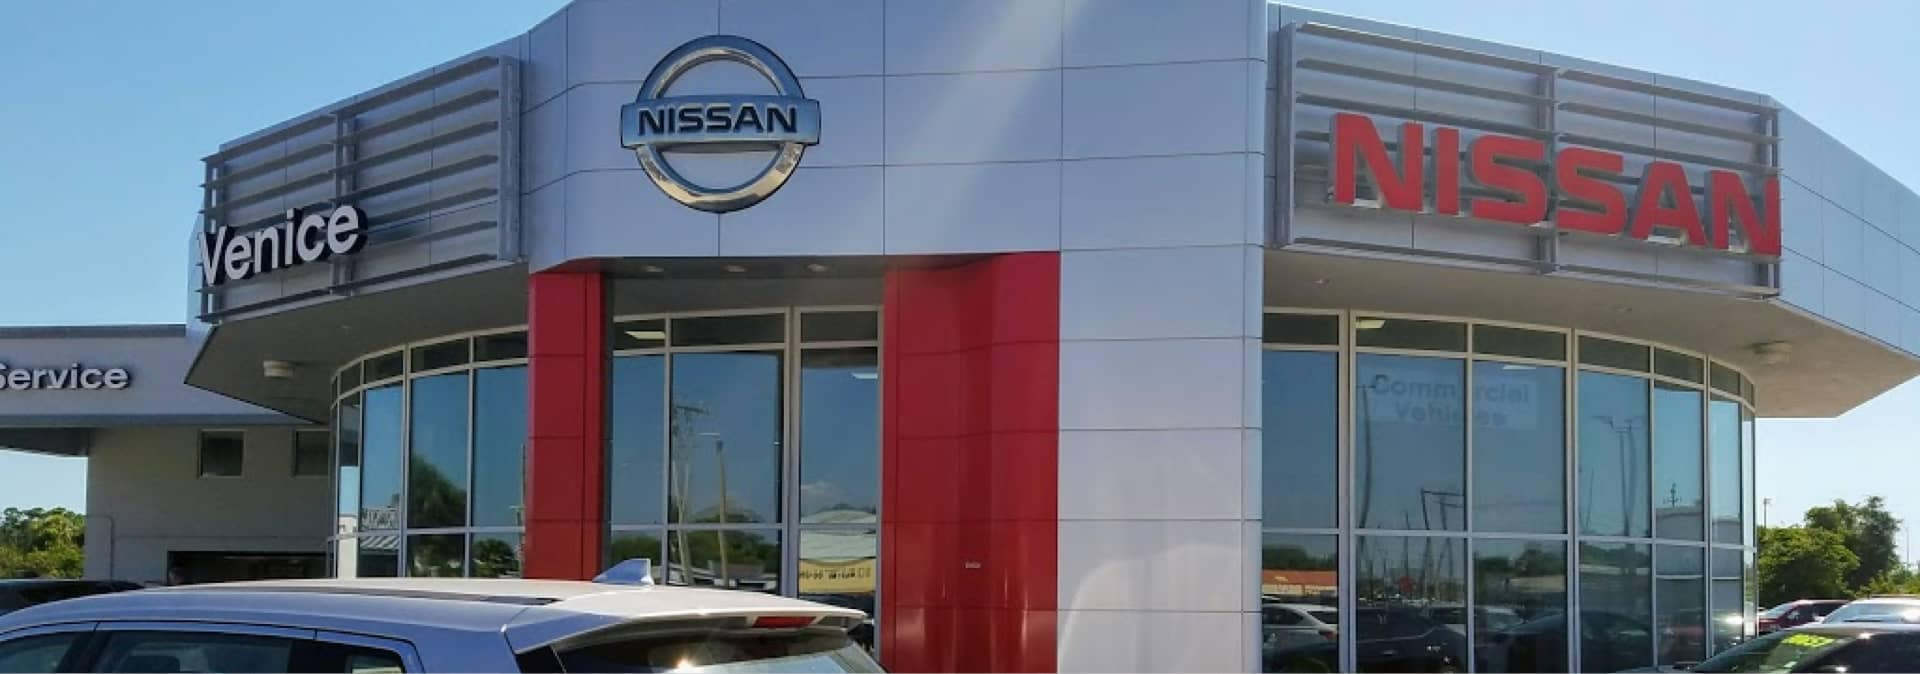 Nissan of Venice front of dealership building